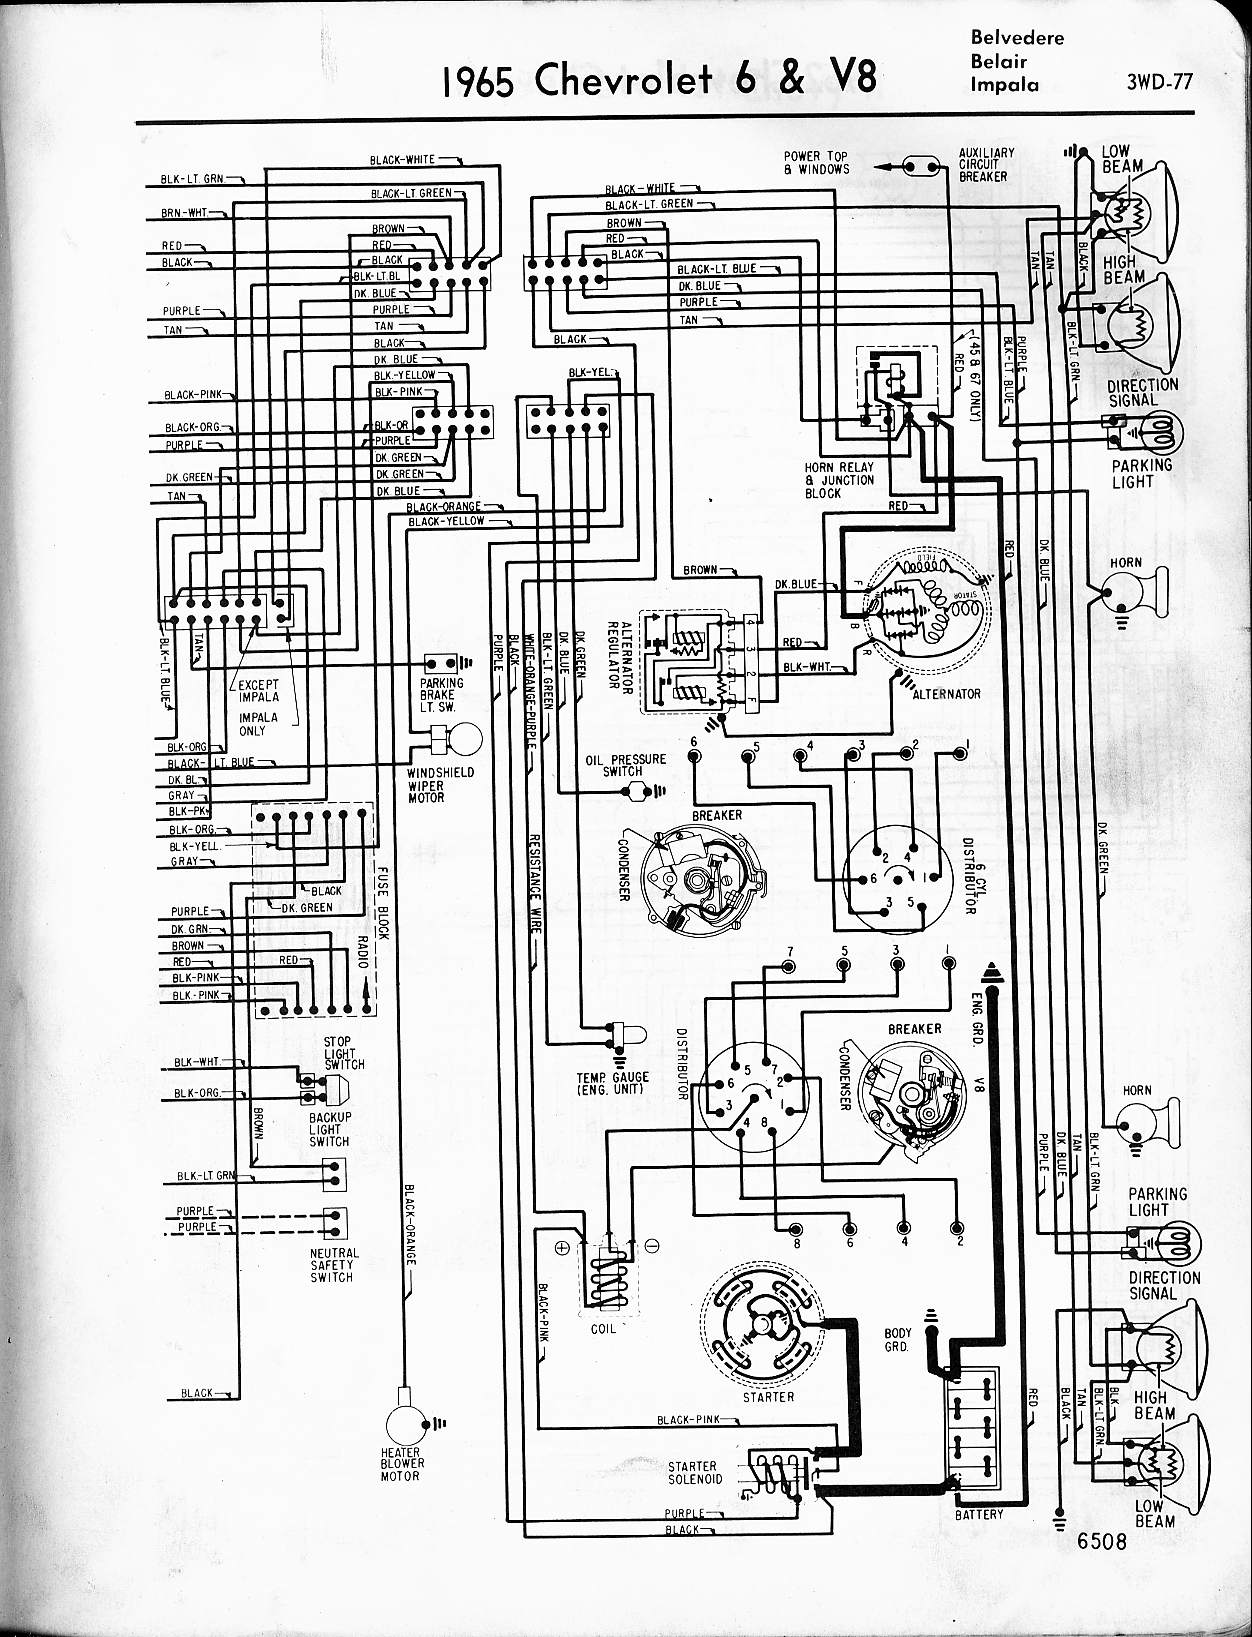 1966 chevy biscayne wiring house wiring diagram symbols u2022 rh maxturner  co 1966 Chevy C 10 Wiring Diagrams 1971 chevy c10 headlight wiring diagram